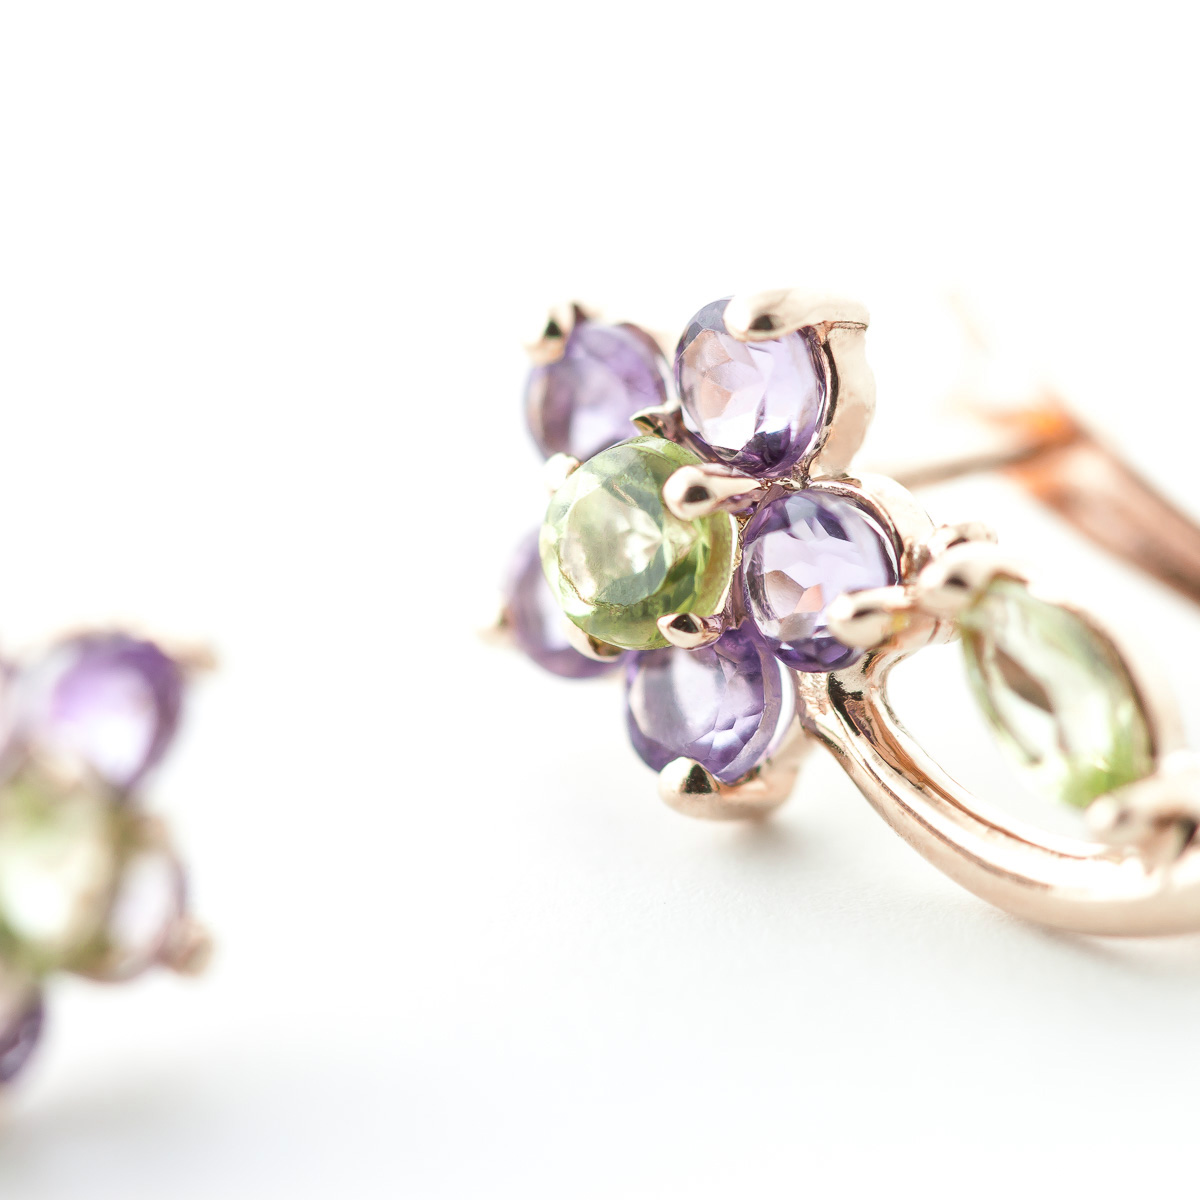 Peridot and Amethyst Flower Stud Earrings 1.72ctw in 9ct Rose Gold